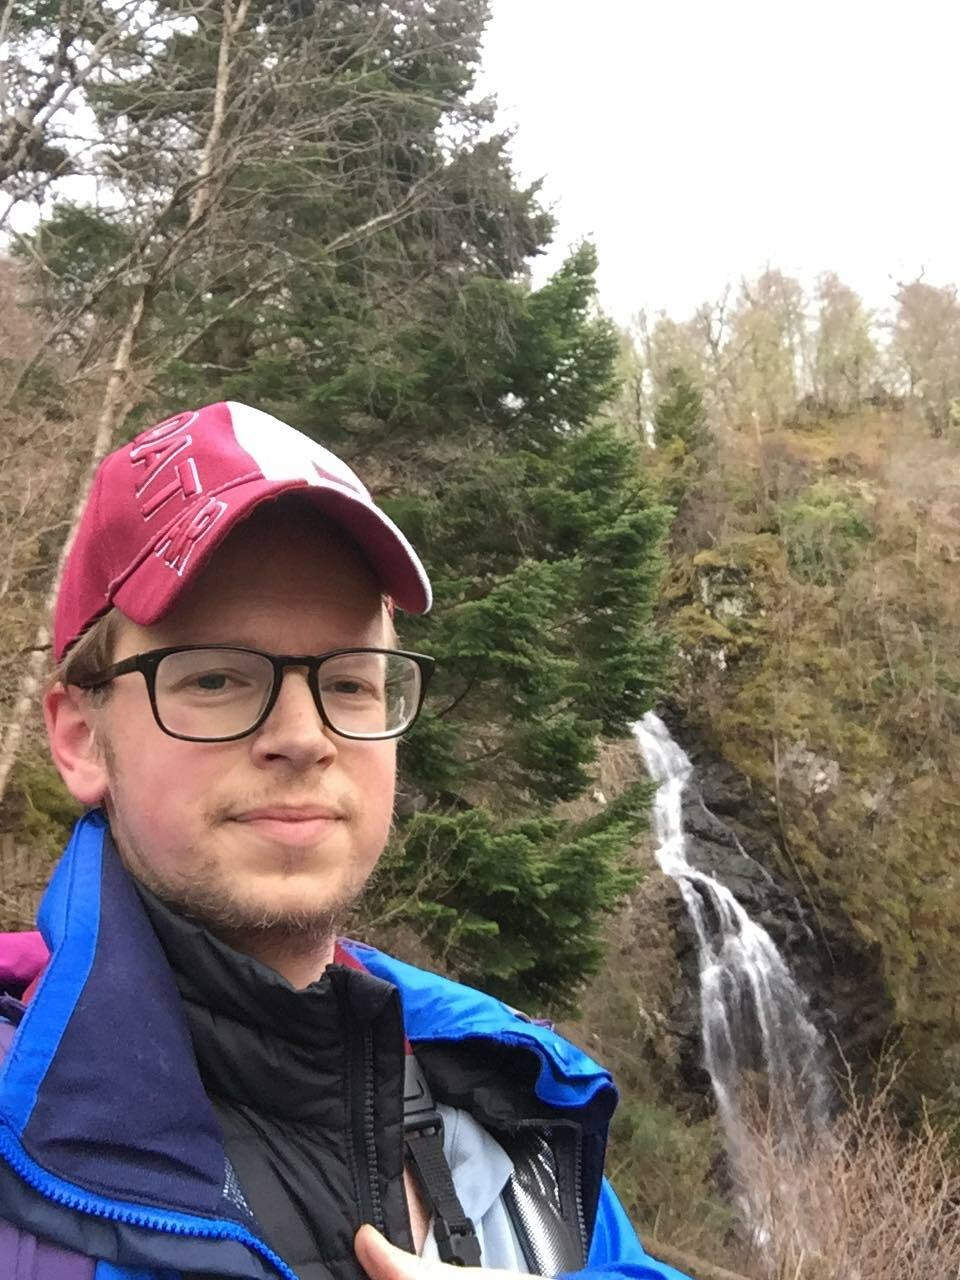 Ben Lindstrom-Ives at the Falls of Divach near the Great Glen Way, not far from where the Sag Harbor native is sheltering in place during the COVID-19 pandemic.